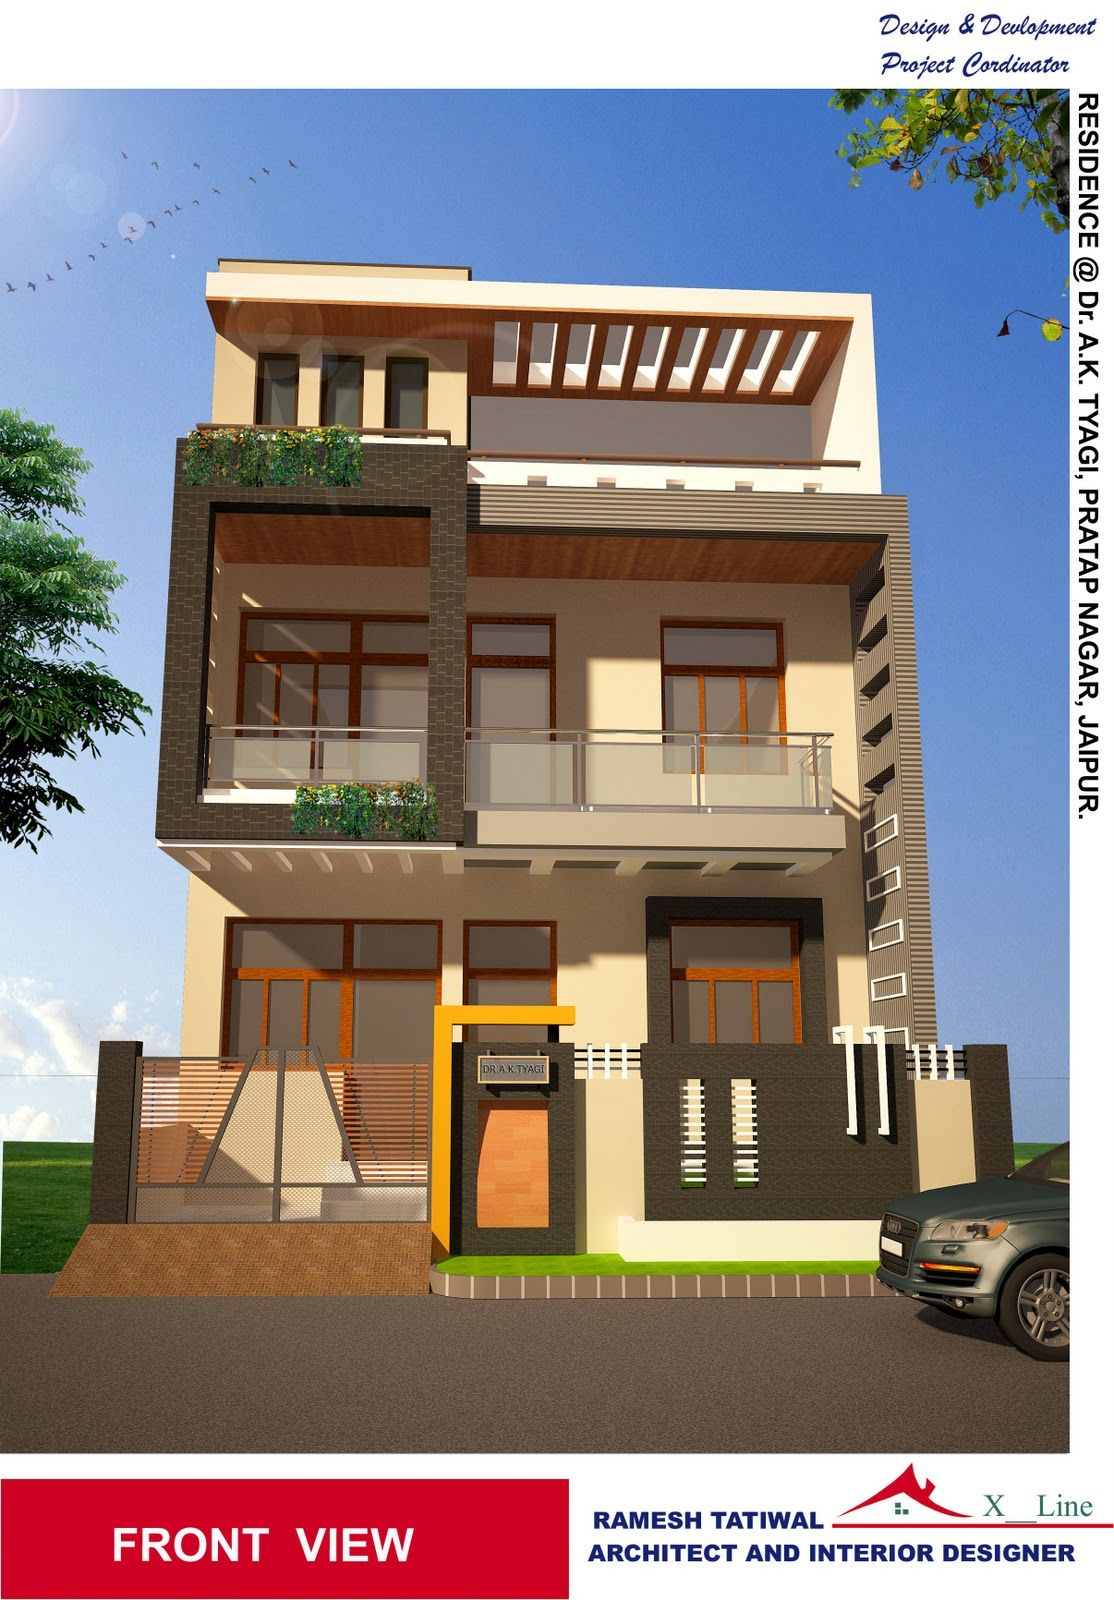 Housedesigns modern indian home architecture design from Indian model house plan design